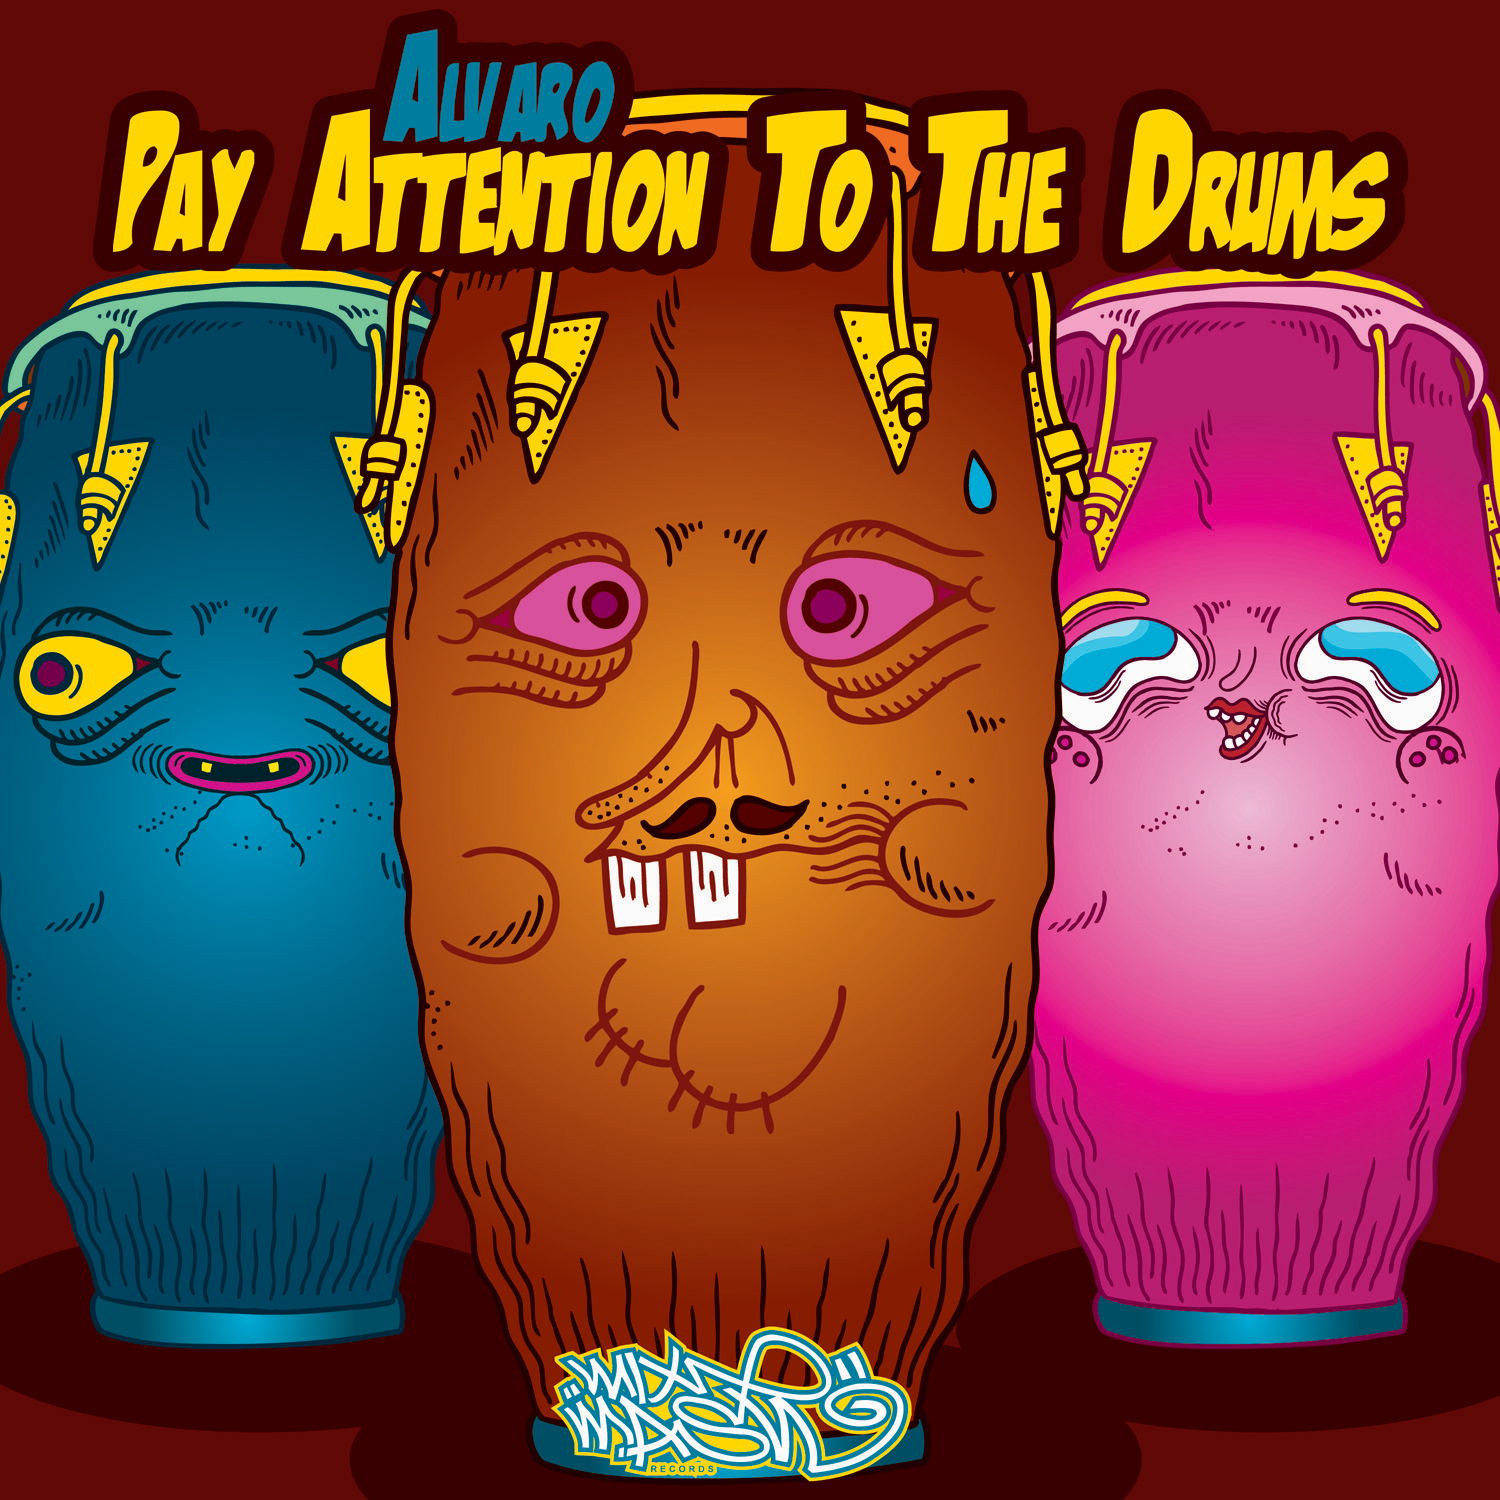 Alvaro's New Single Pay Attention To The Drums Soon On Mixmash Records